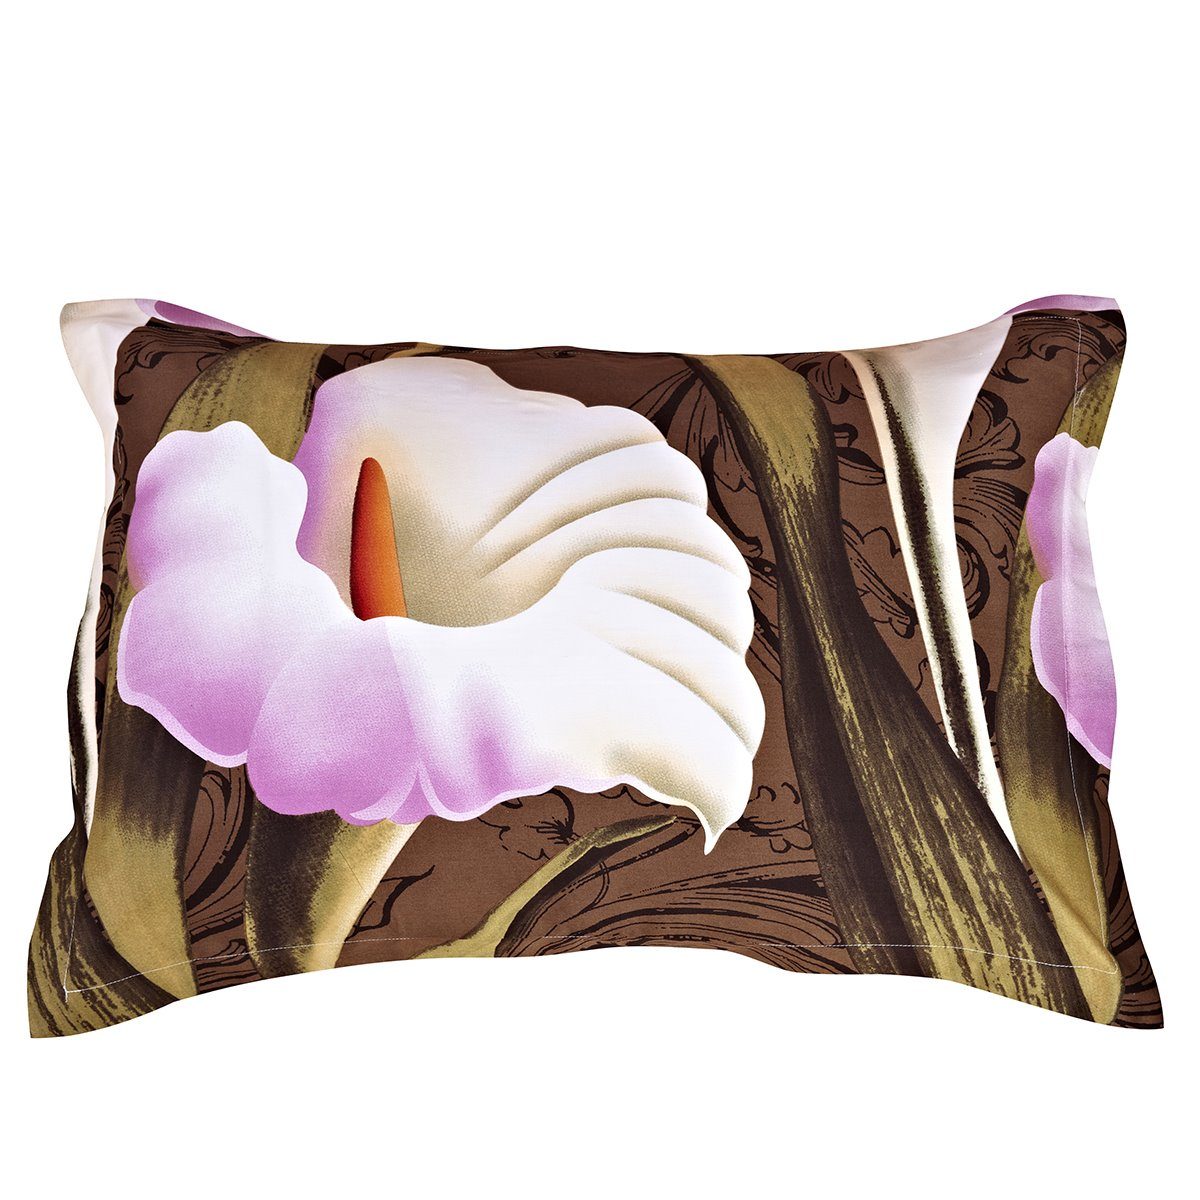 The Calla Lily Printing One Pair Cotton Pillowcases